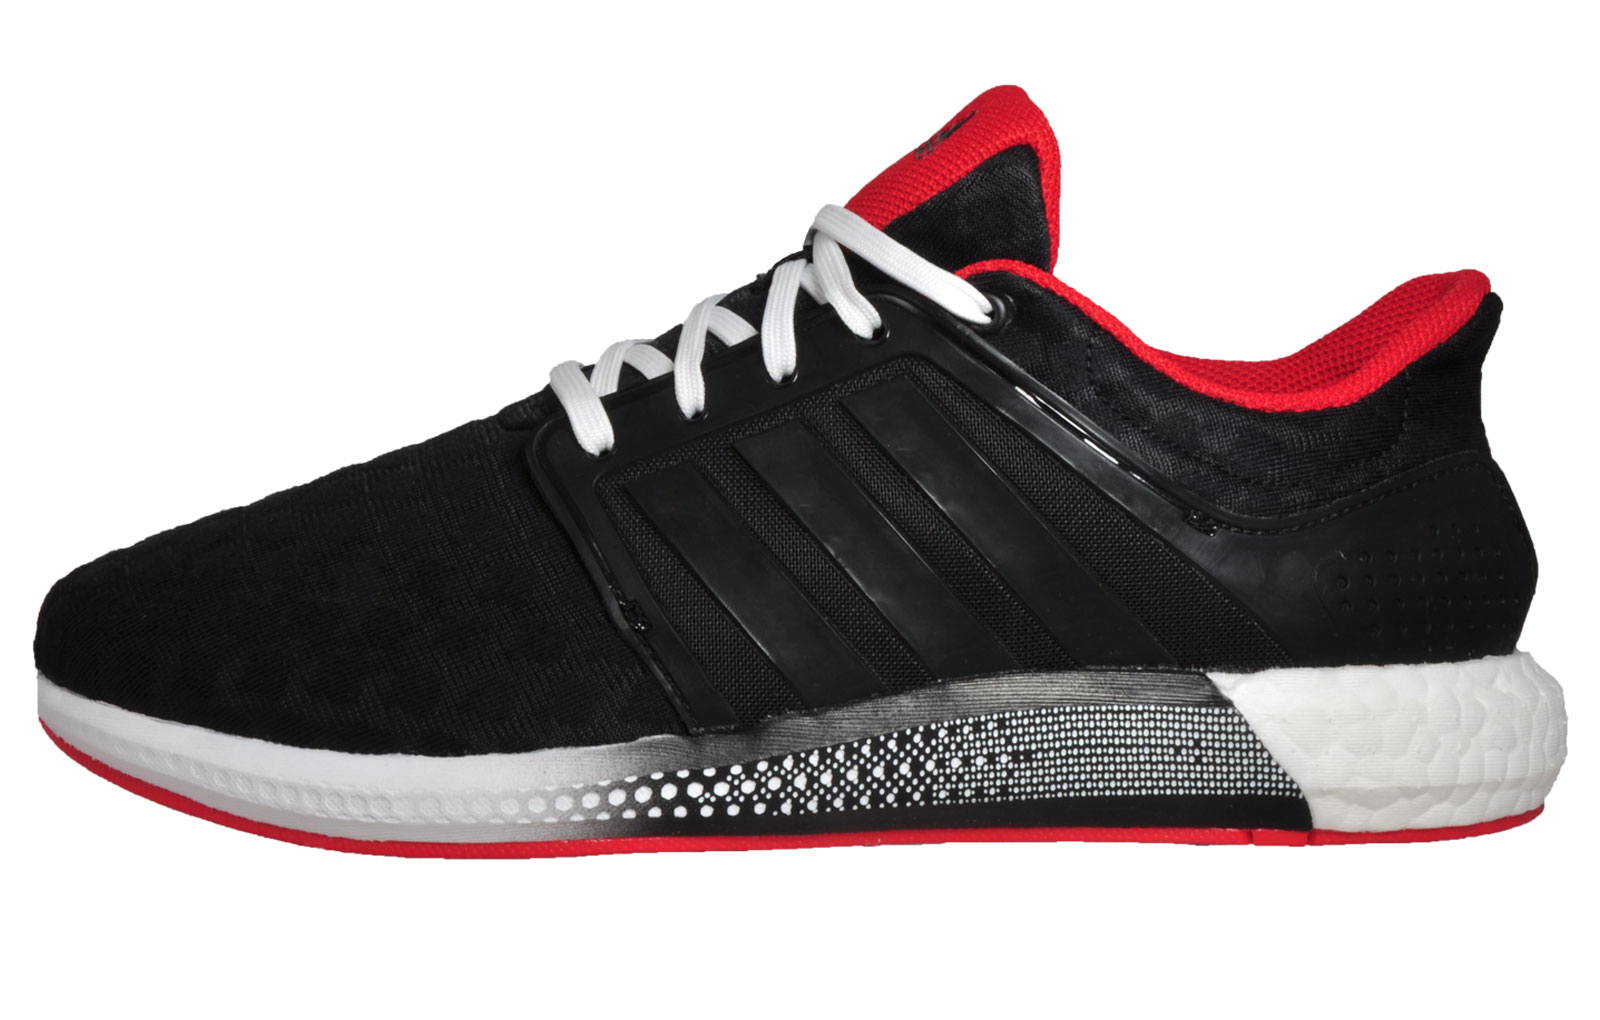 e49dd7833 Adidas Solar RNR Boost Mens Premium Performance Running Shoes Gym Trainers  Black. Manufacturers code  AQ1914